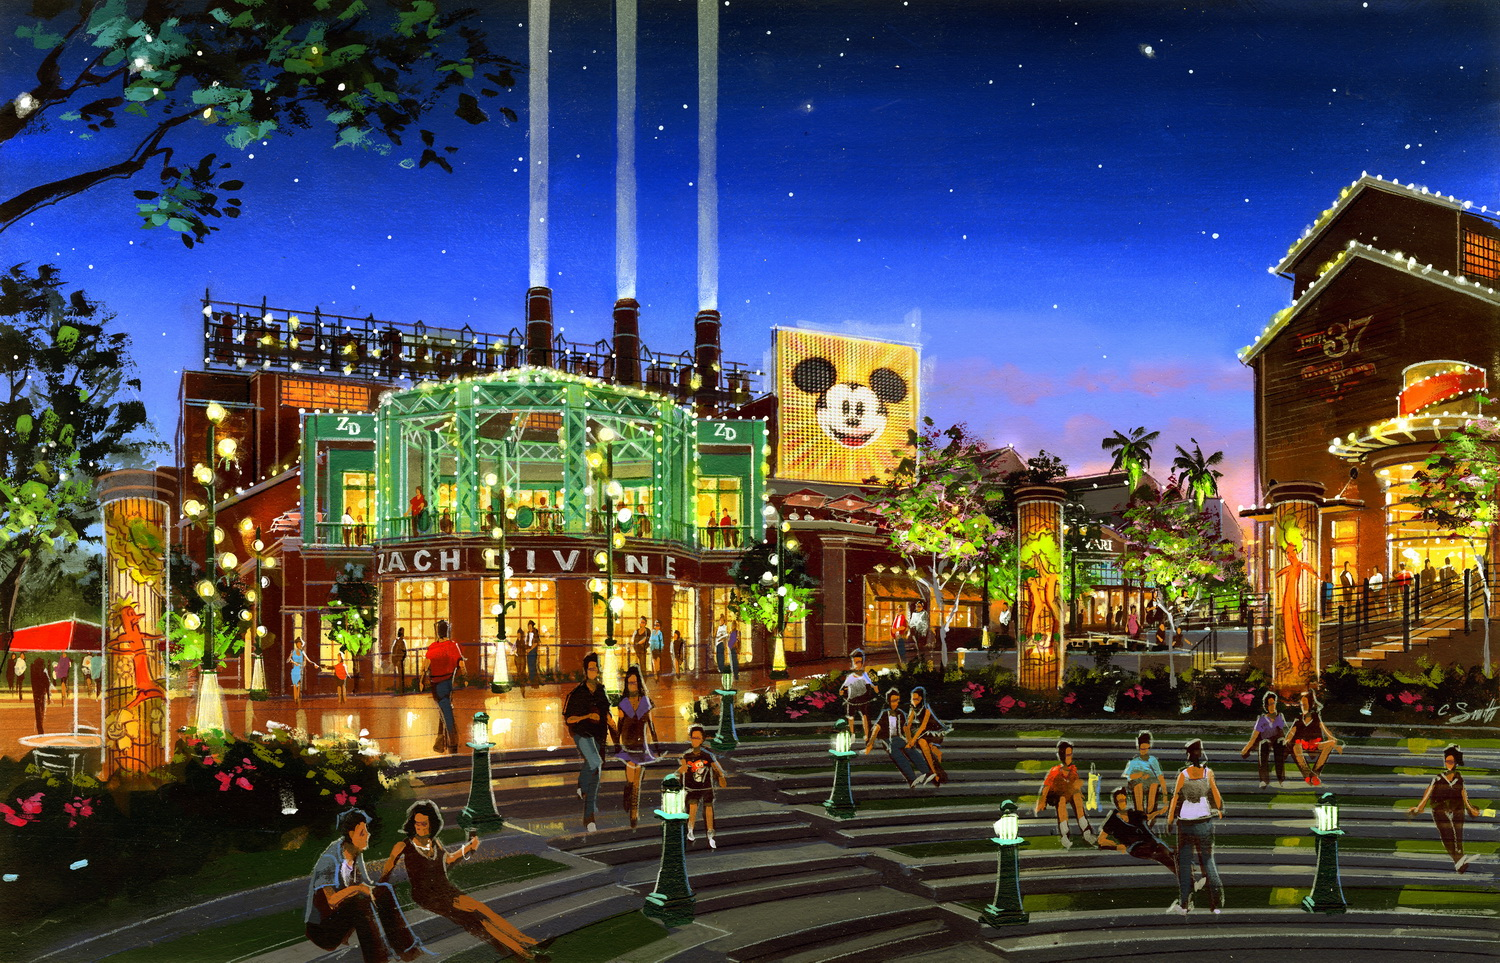 hollywood california map with Where In Walt Disney World Downtown on desertpalmshotel as well 3124241249 additionally 5 Reasons Must Visit Coastal Northern California together with Krusty Burger And Moes Tavern Now Open At Universal Studios Hollywood further Viewtopic.